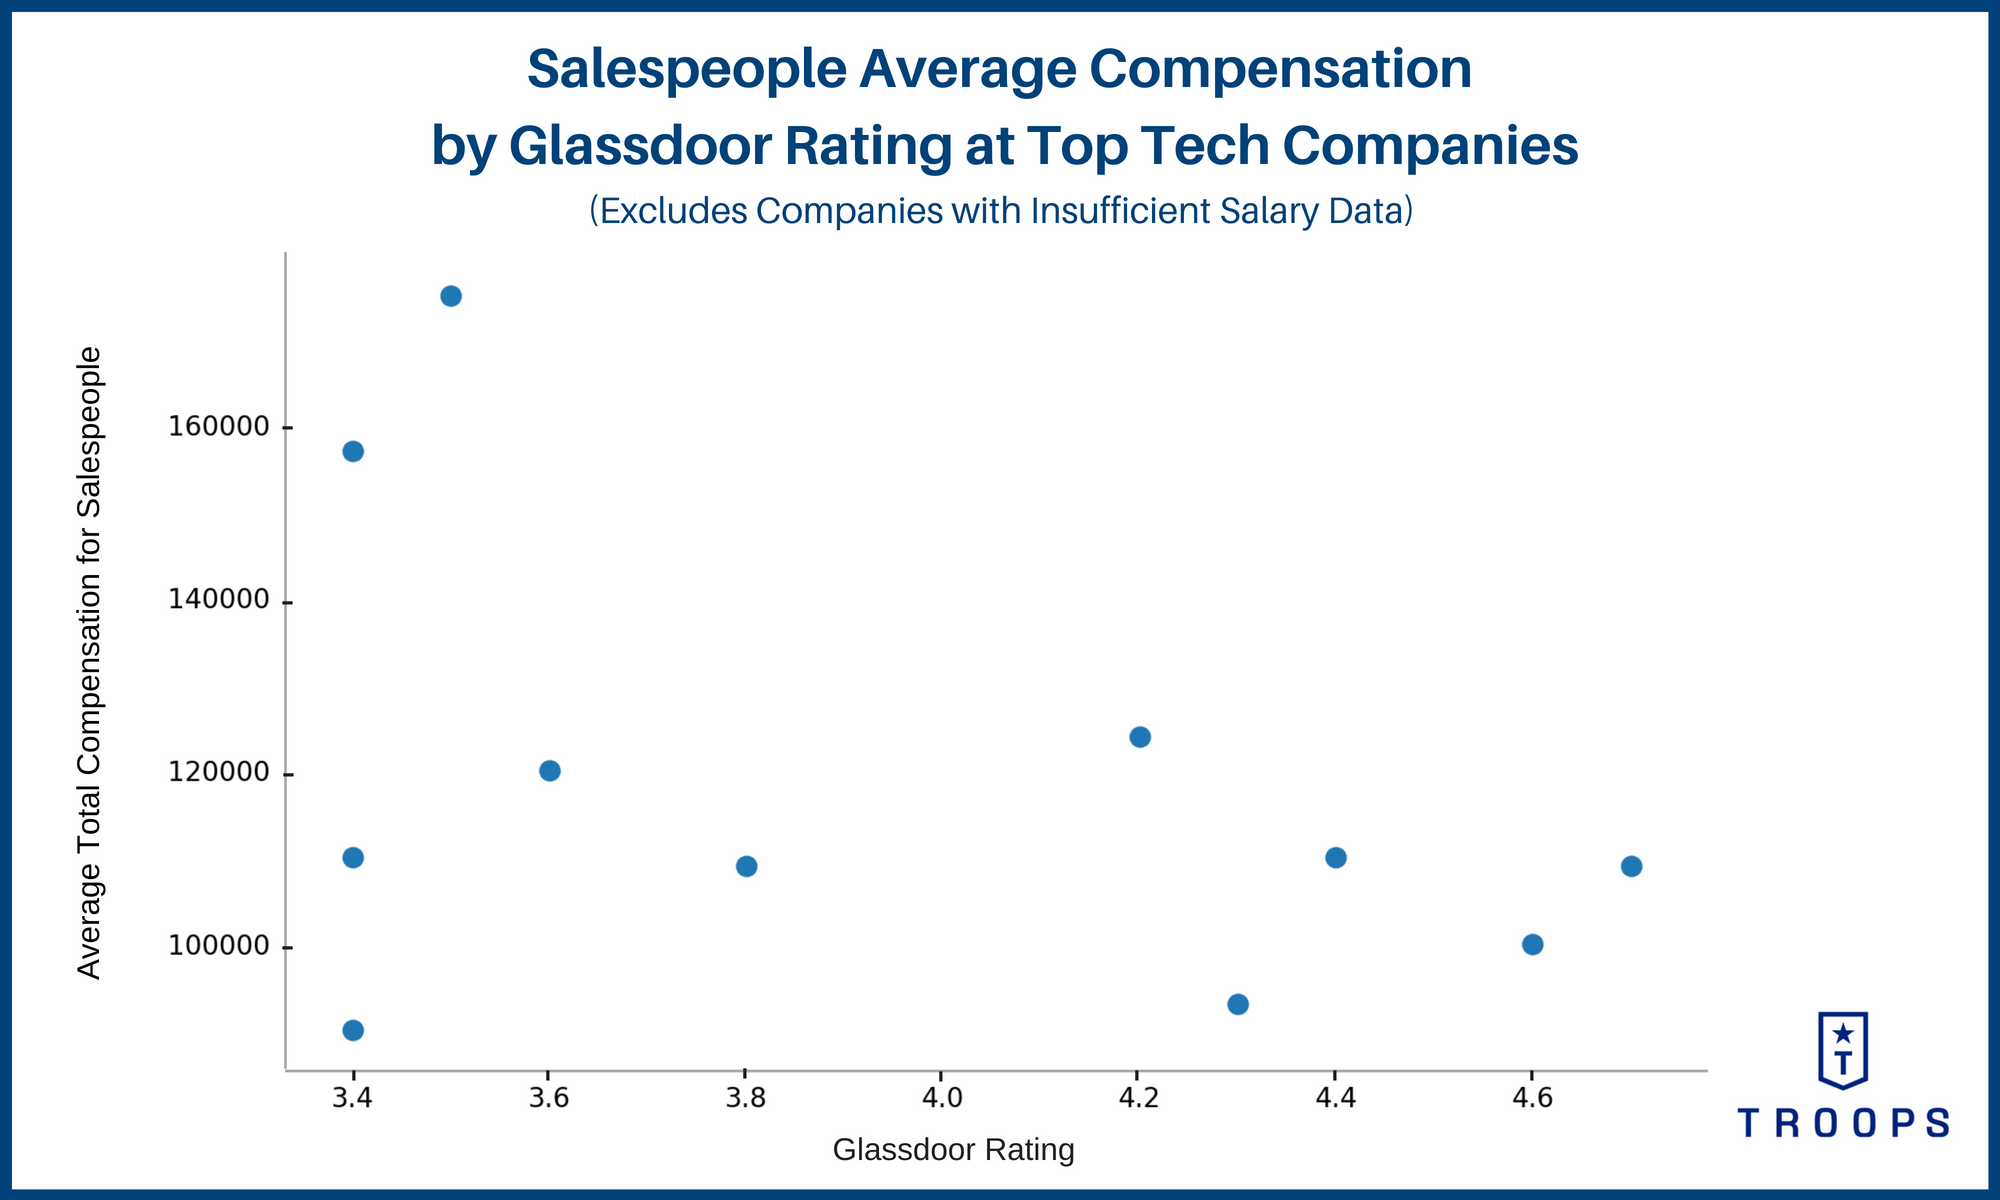 Sales Compensation Plans: Glassdoor Rating Has Almost No Correlation with Total Compensation